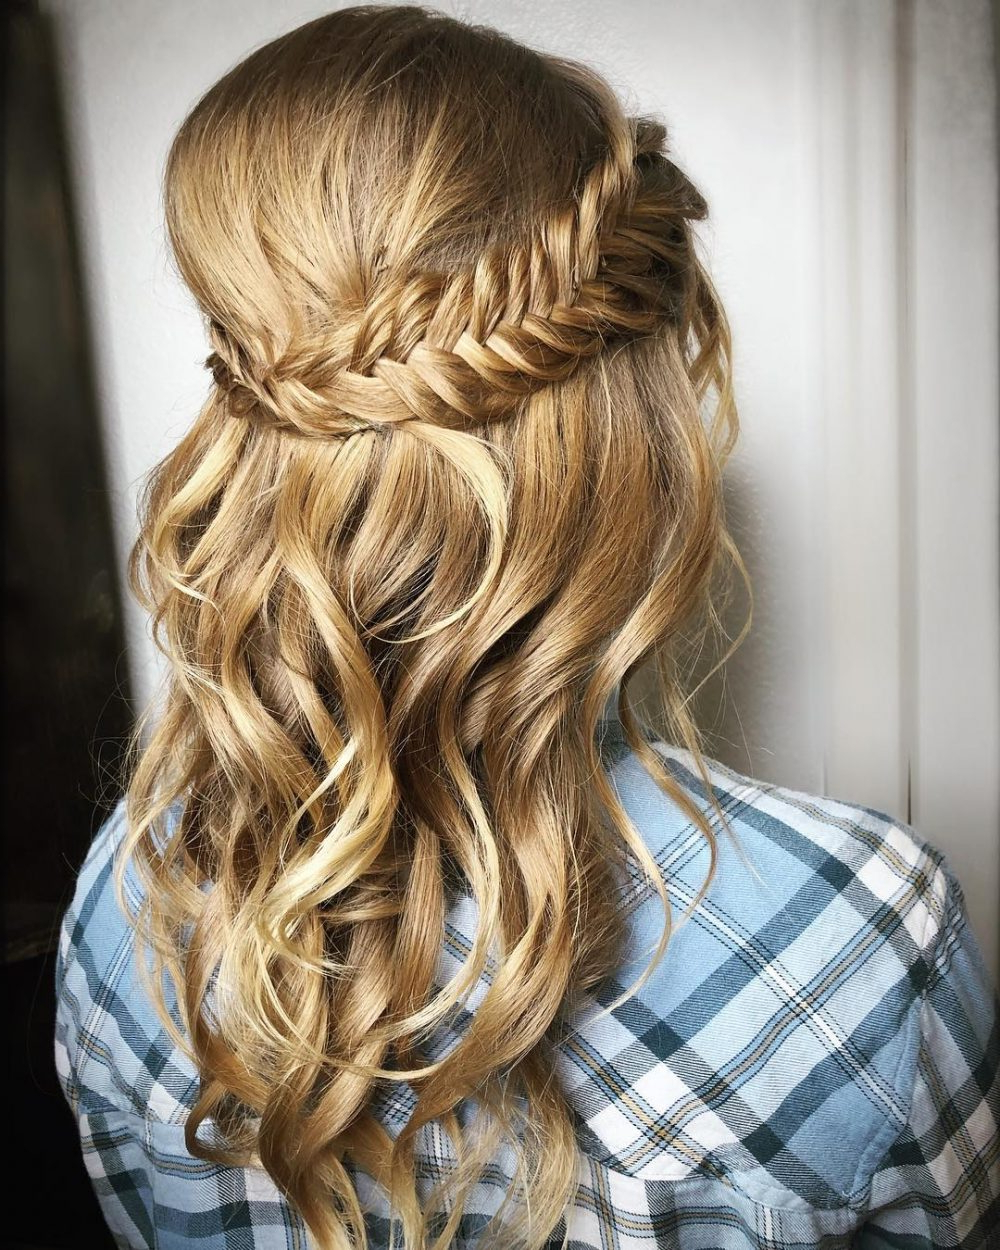 Well Known Half Long Half Medium Hairstyles Throughout Half Up Half Down Prom Hairstyles – Pictures And How To's (View 9 of 20)